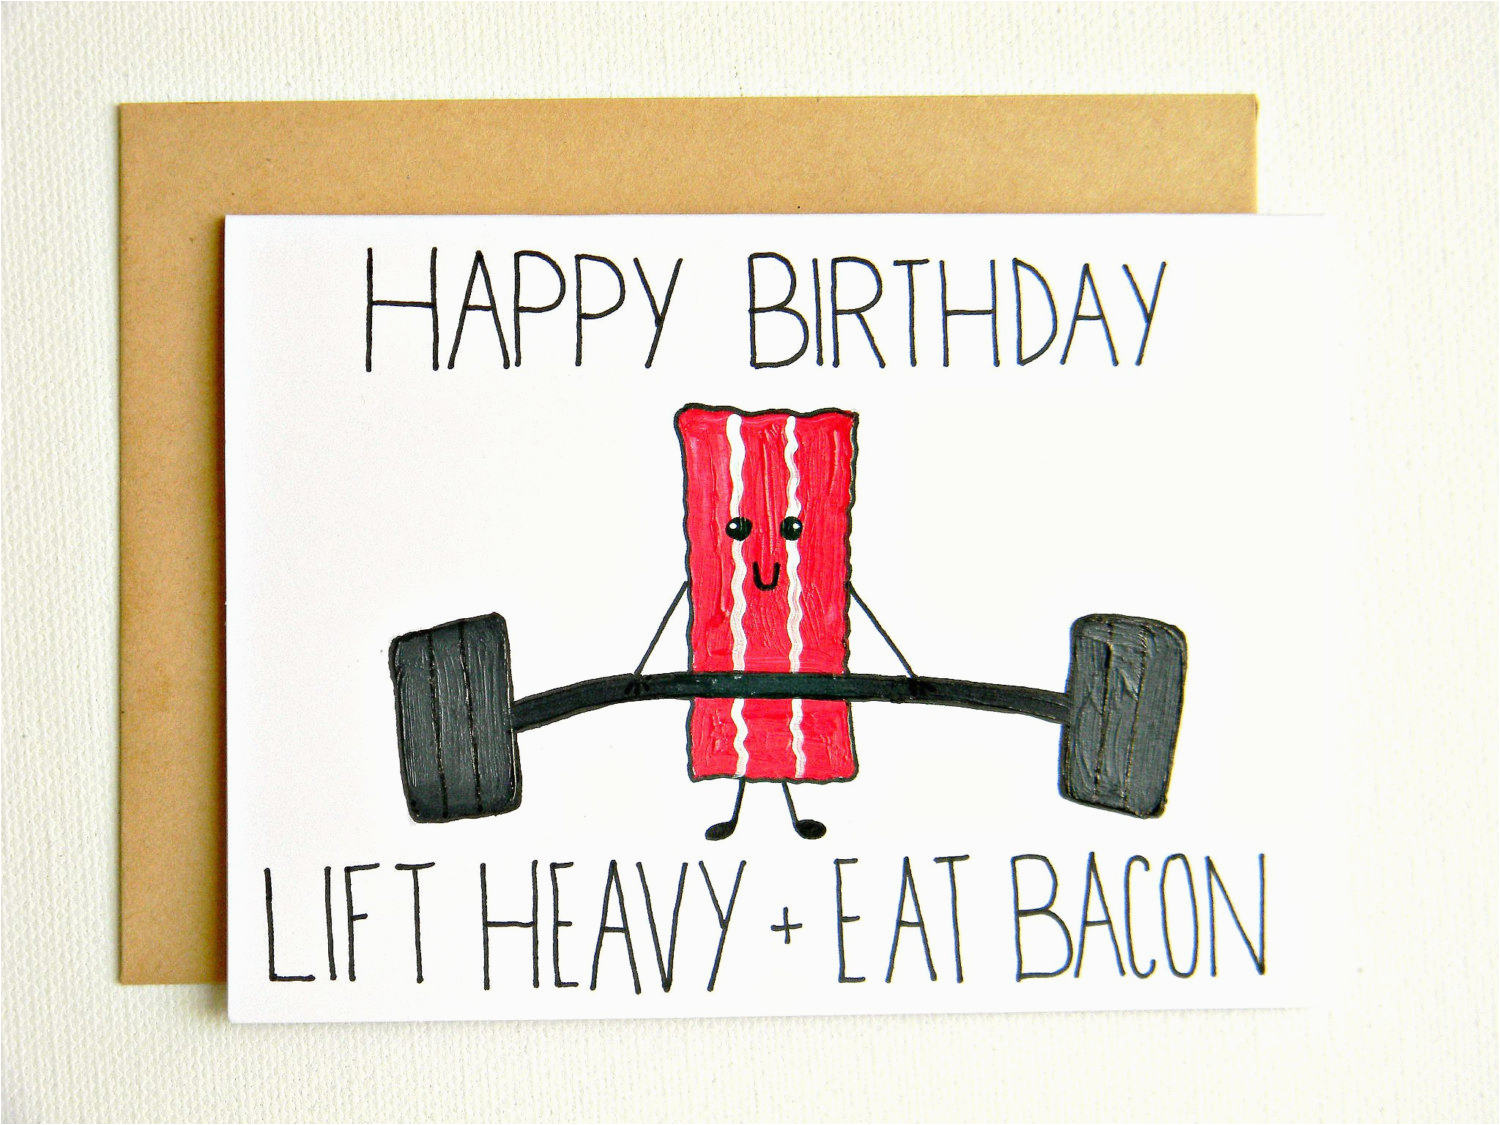 crossfit fitness bacon birthday card by joyplicity on etsy